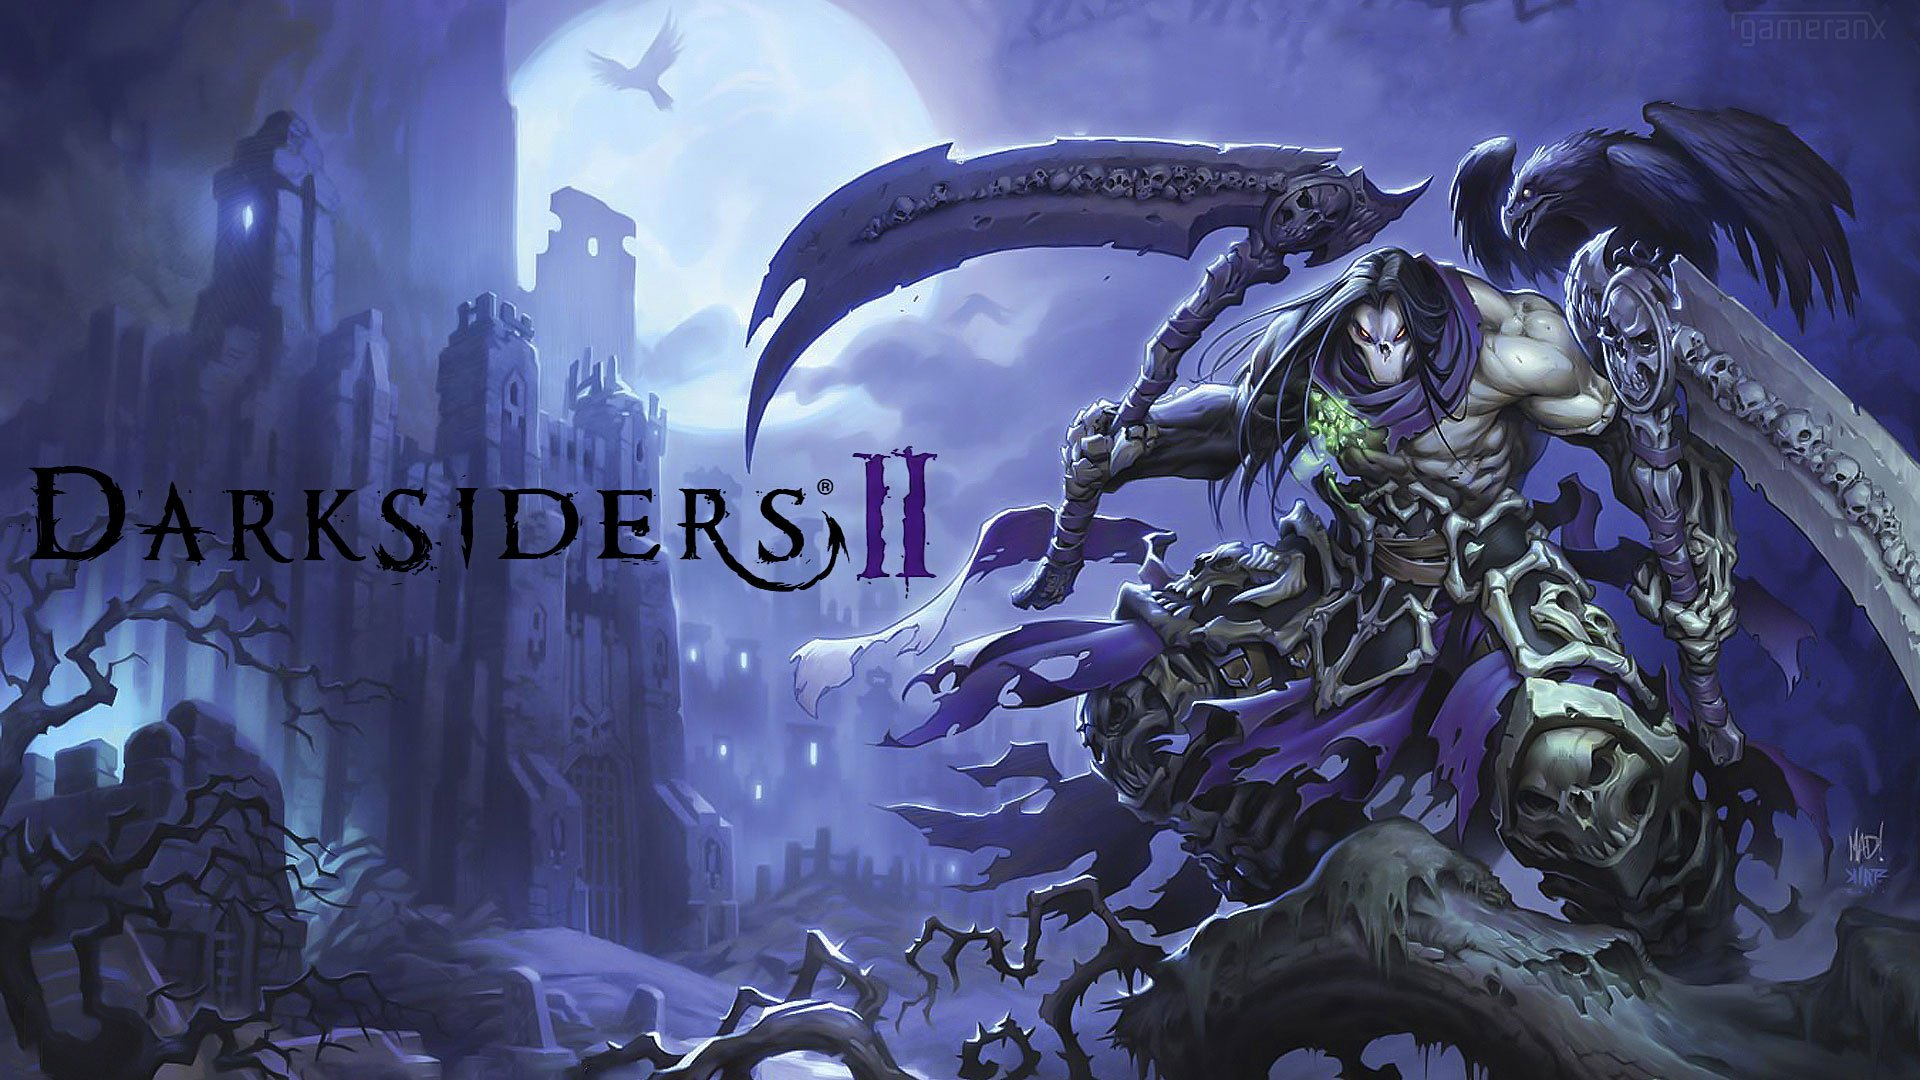 Darksiders 2 Wallpapers in HD 1920x1080